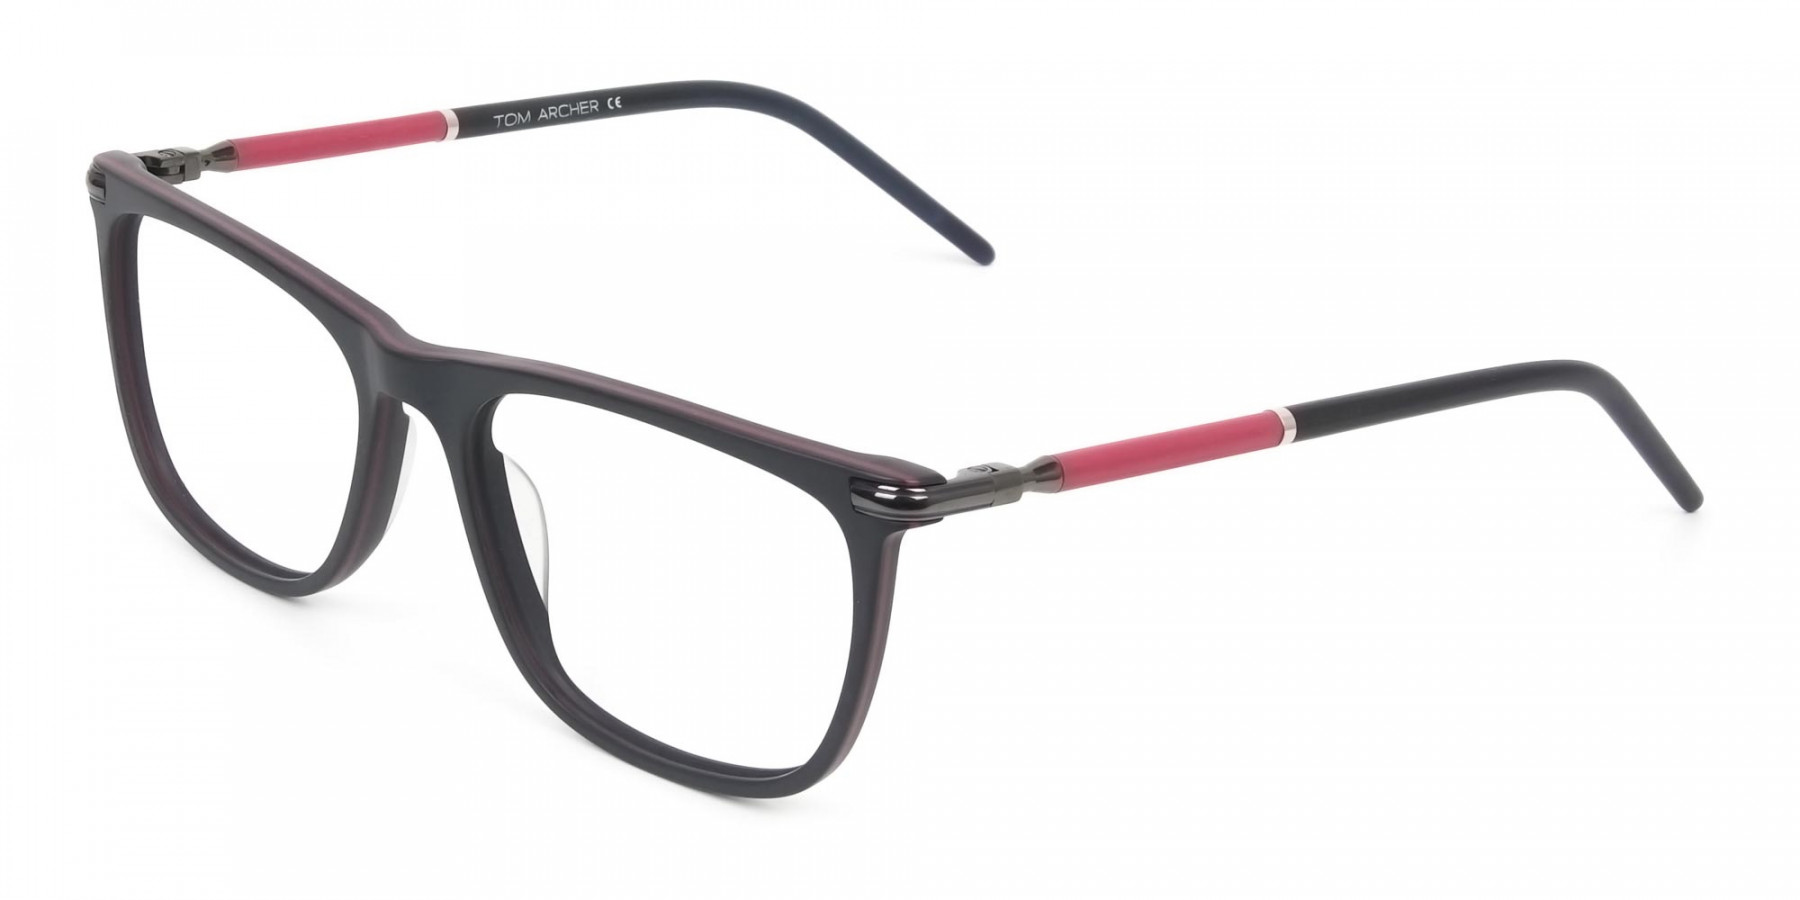 Matte Black and Red Rectangular Spectacles in Acetate - 1